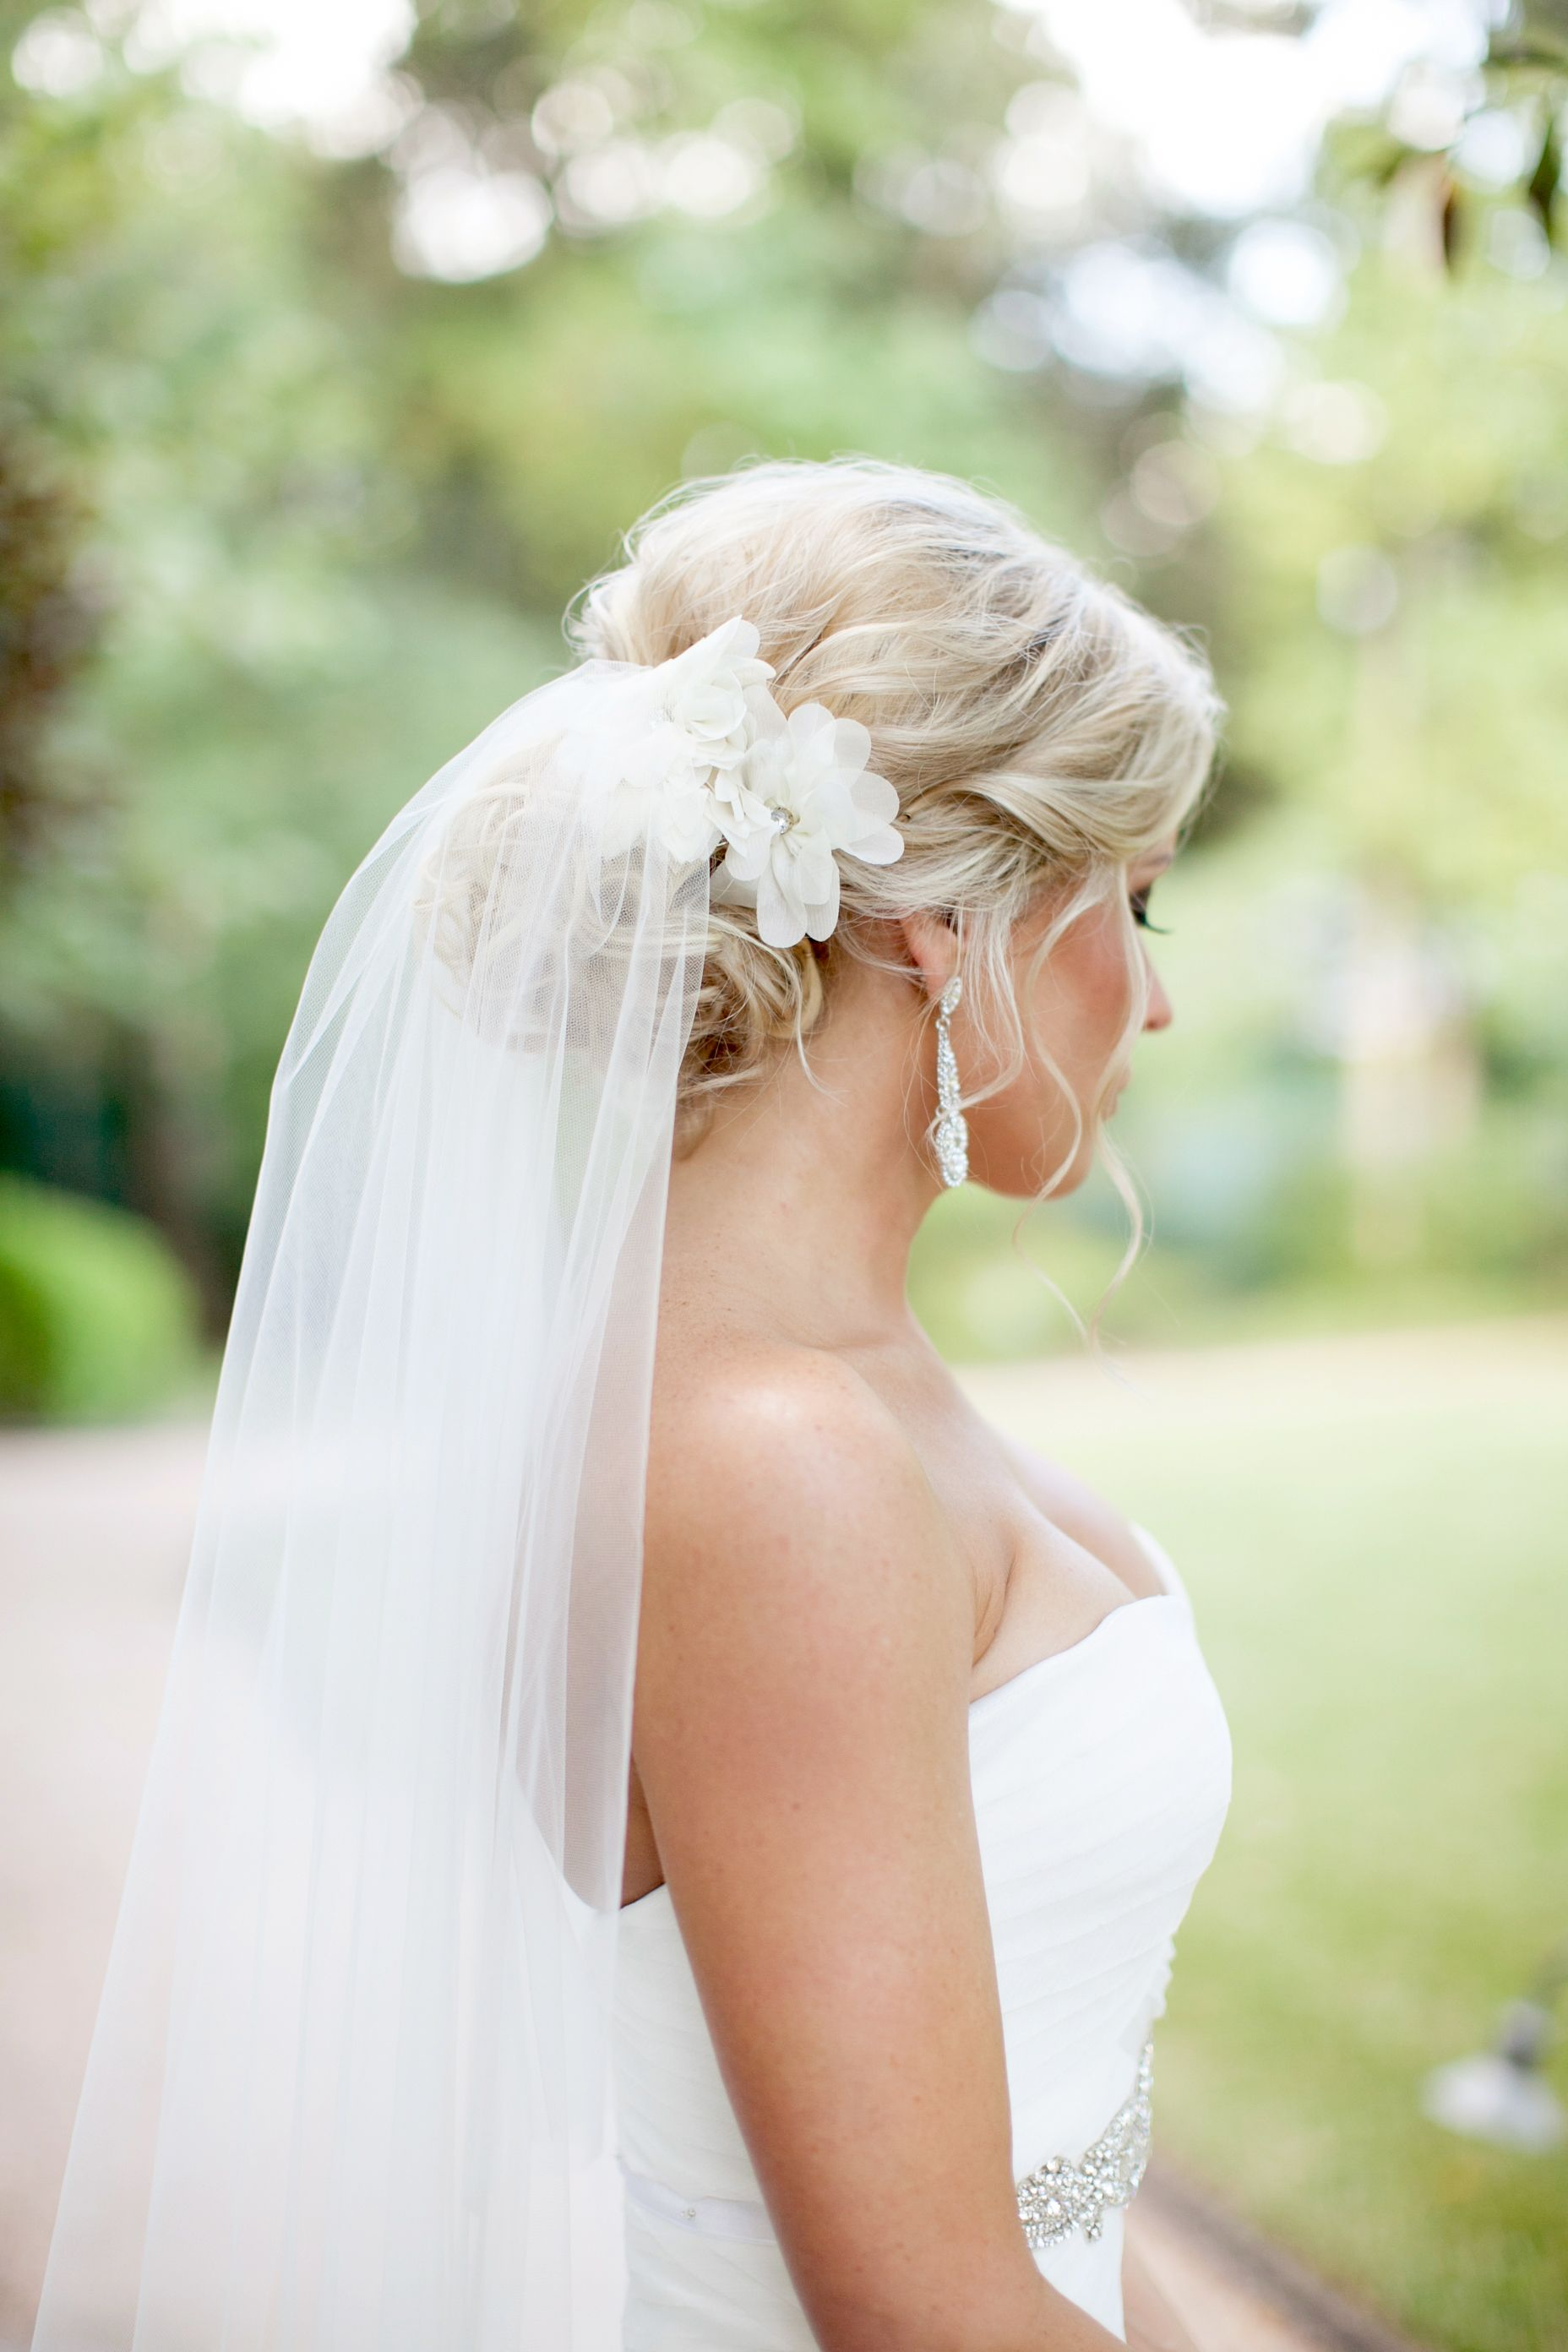 kelli wore her hair in a romantic bridal updo with a pair of